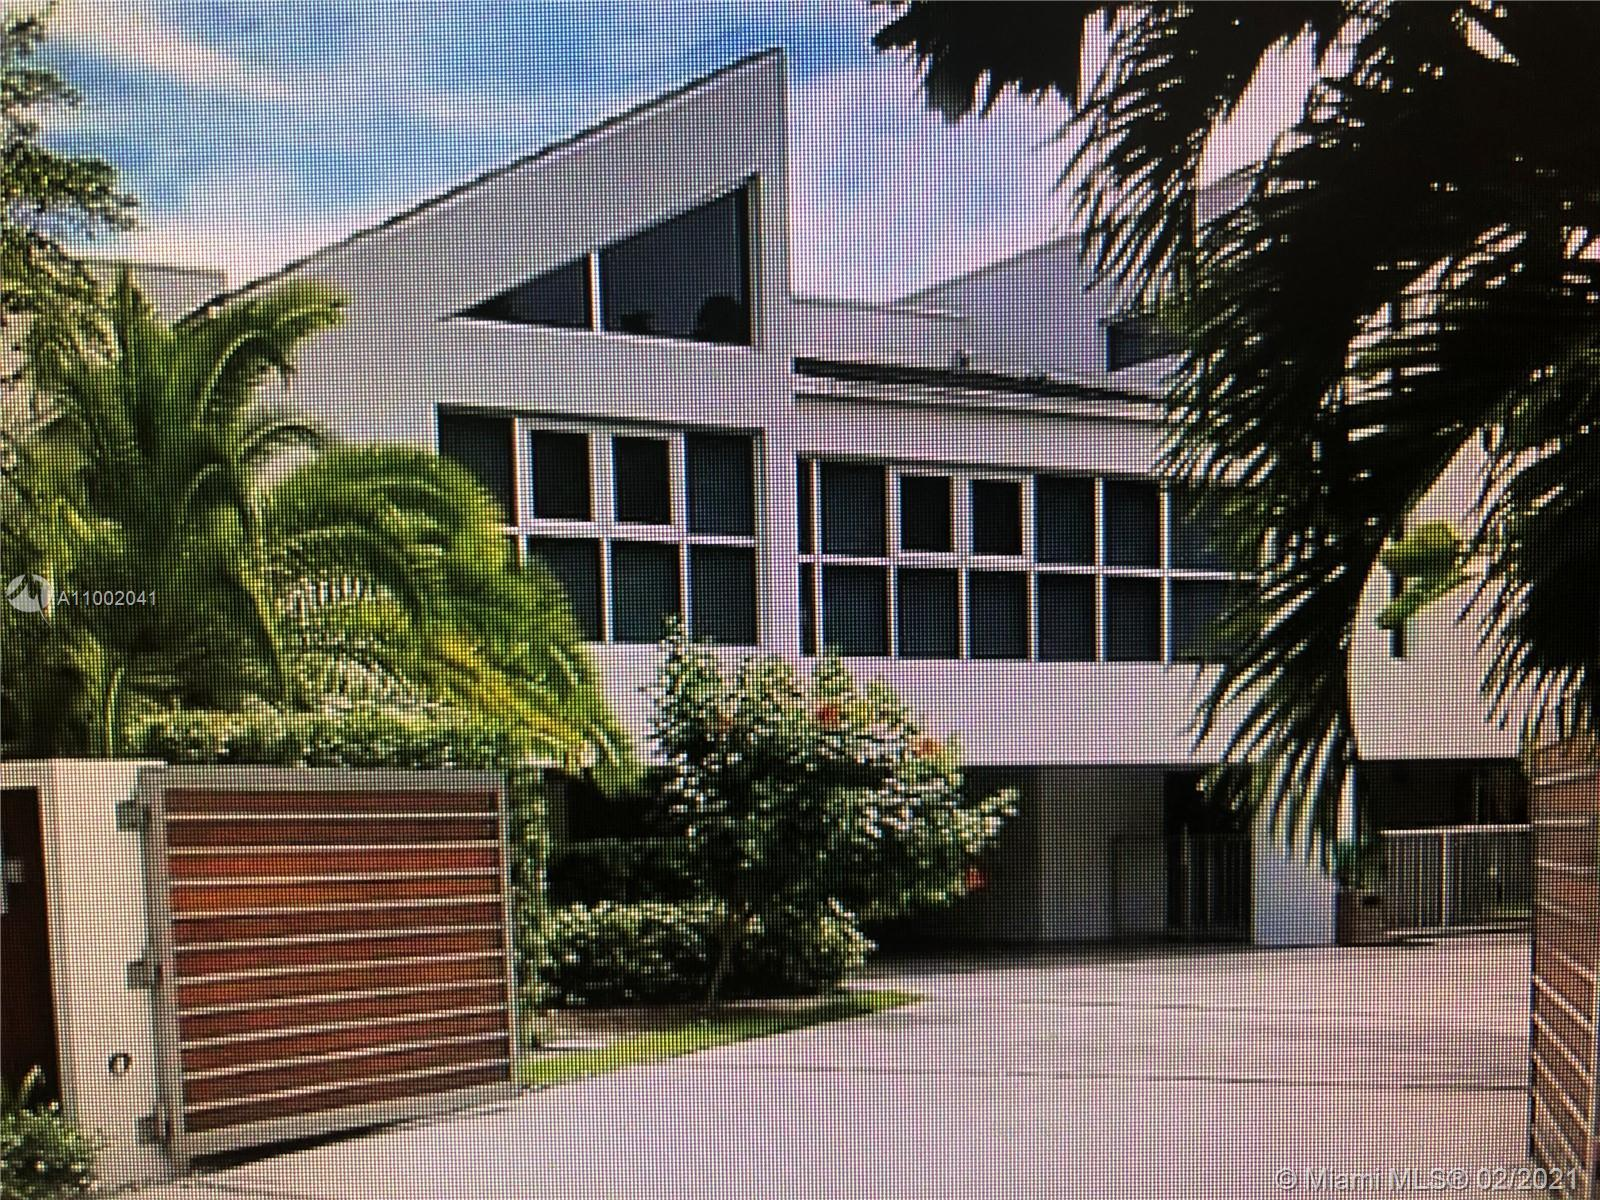 This 4 bedrooms, 4 bathrooms + 2 bonus rooms, modern entertainers dream home, was designed by famous